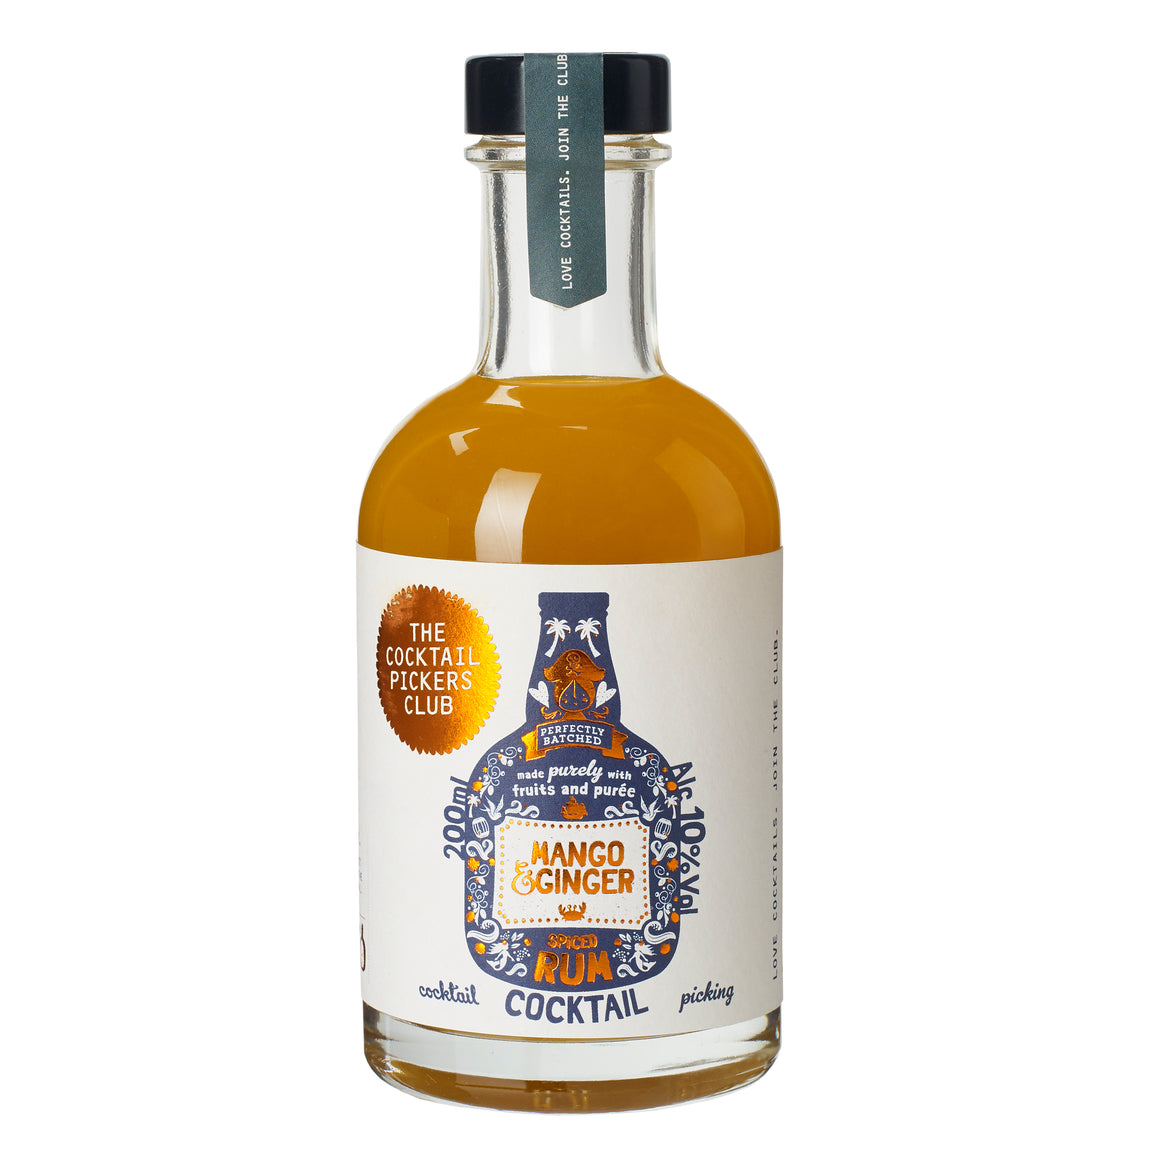 Mango and Ginger Spiced Rum Cocktail 200ml